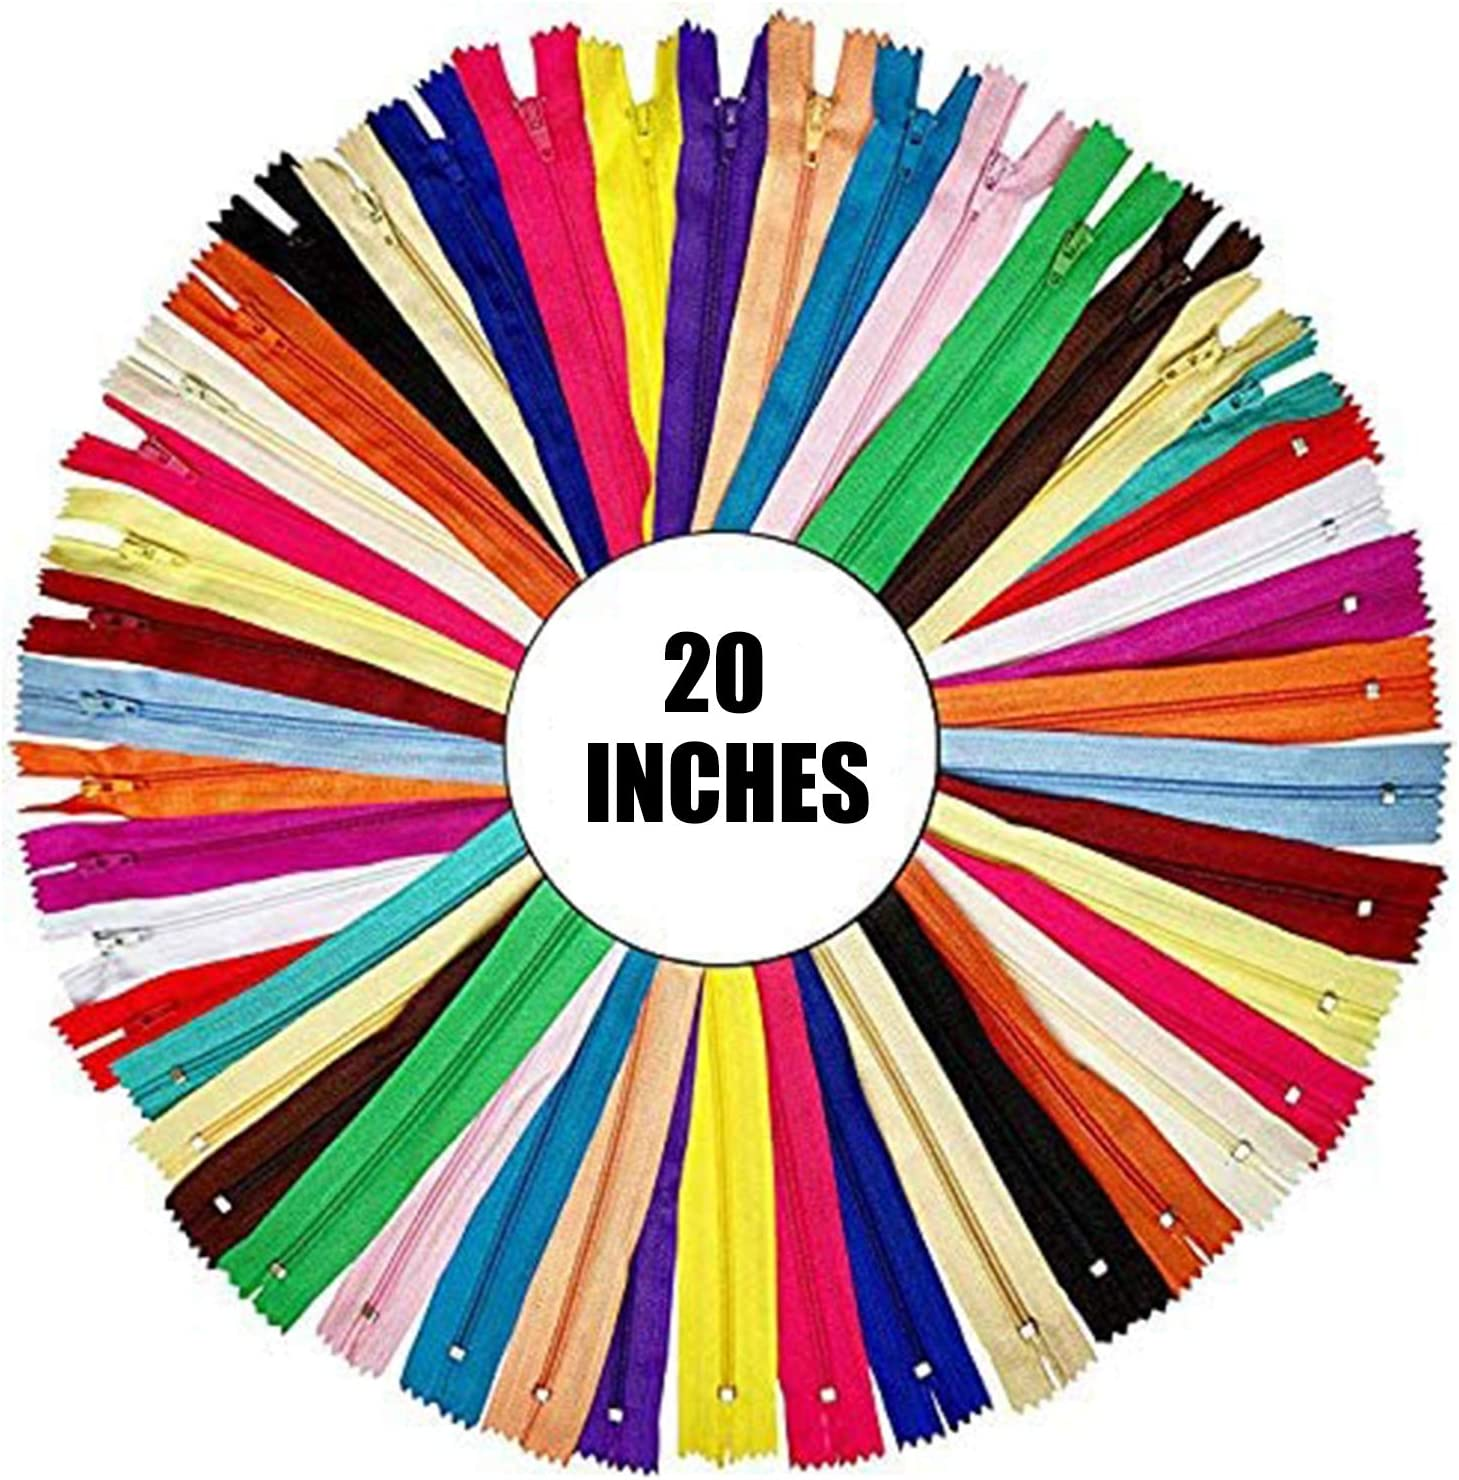 20 Assorted Colors 5 Inch Colorful Sewing Zippers Supplies for Tailor Sewing Crafts 60pcs Nylon Coil Zippers